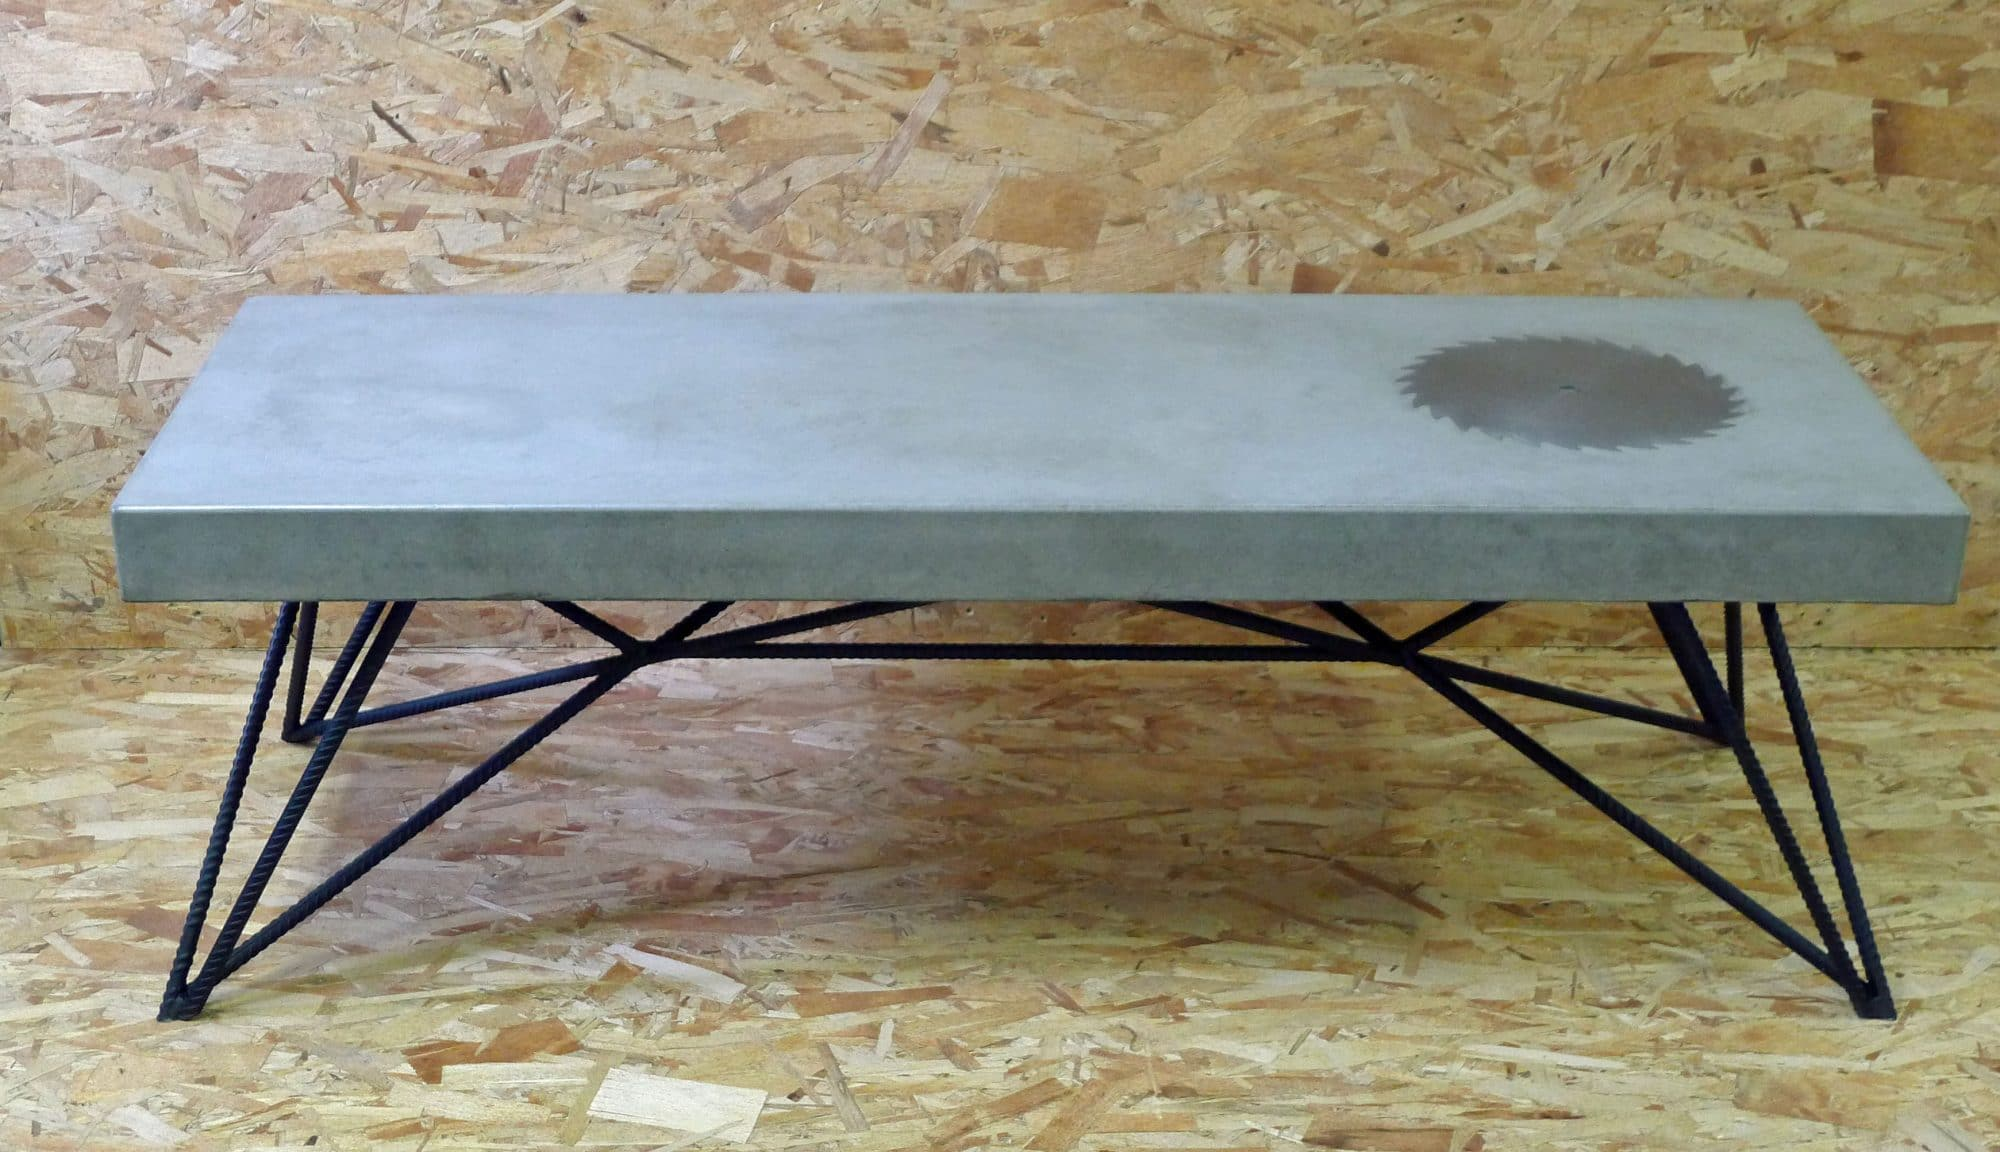 Concrete Pete concrete and rebar coffee table : rebar base from www.concretepete.com size 2000 x 1152 jpeg 222kB